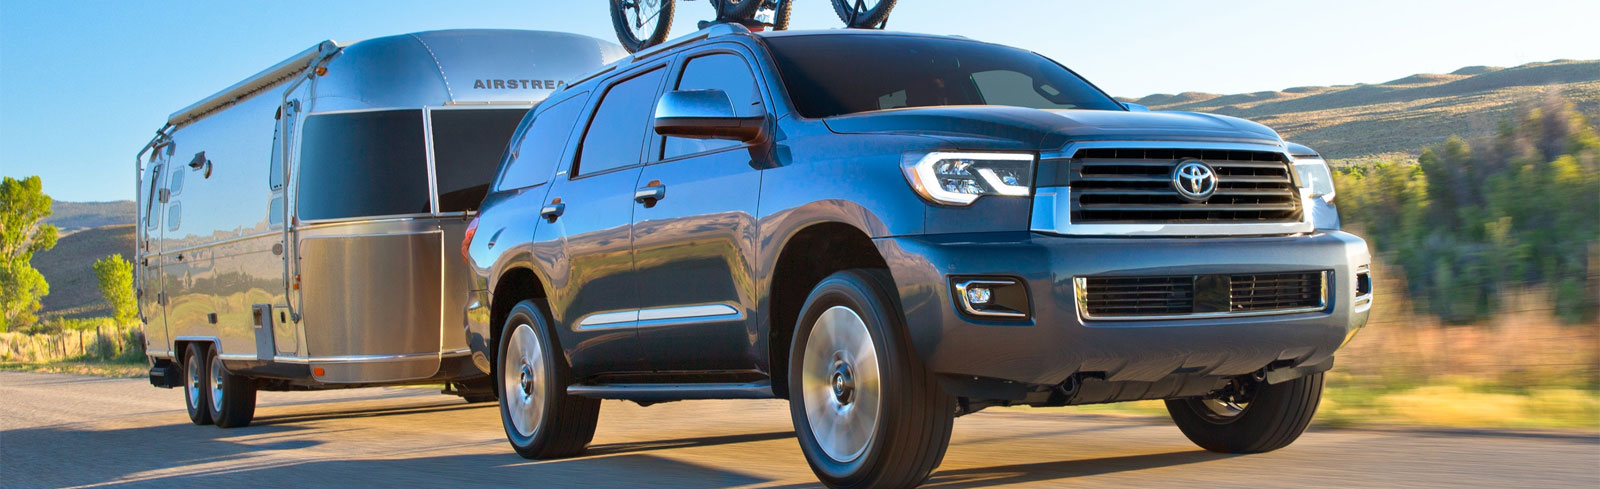 2020 Toyota Sequoia Full-Size SUV in Oklahoma City, Oklahoma